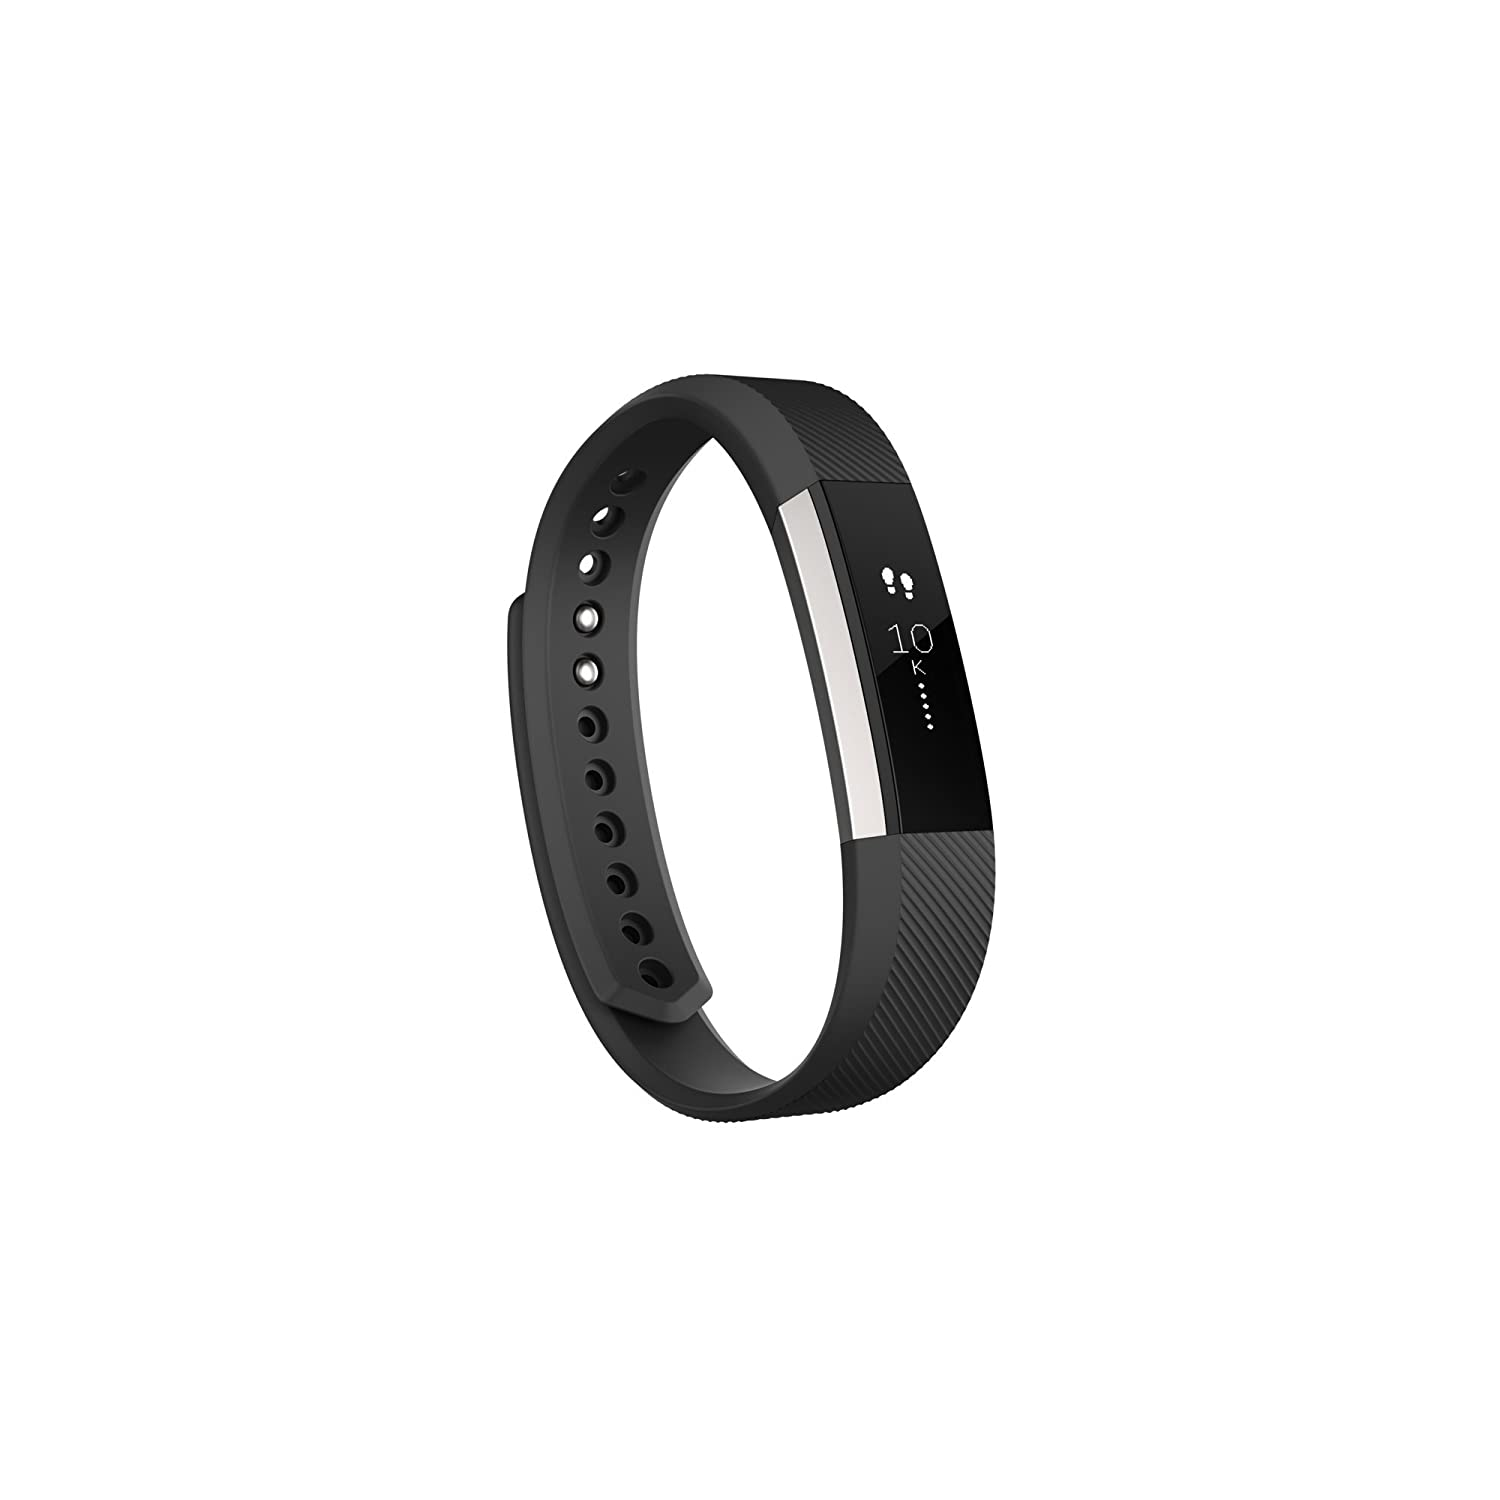 Fitbit Alta Wireless Activity and Fitness Tracker Smart Wristband, Black, Large (6.7-8.1 in) (Certified Refurbished) FB406BKL-EU-cr